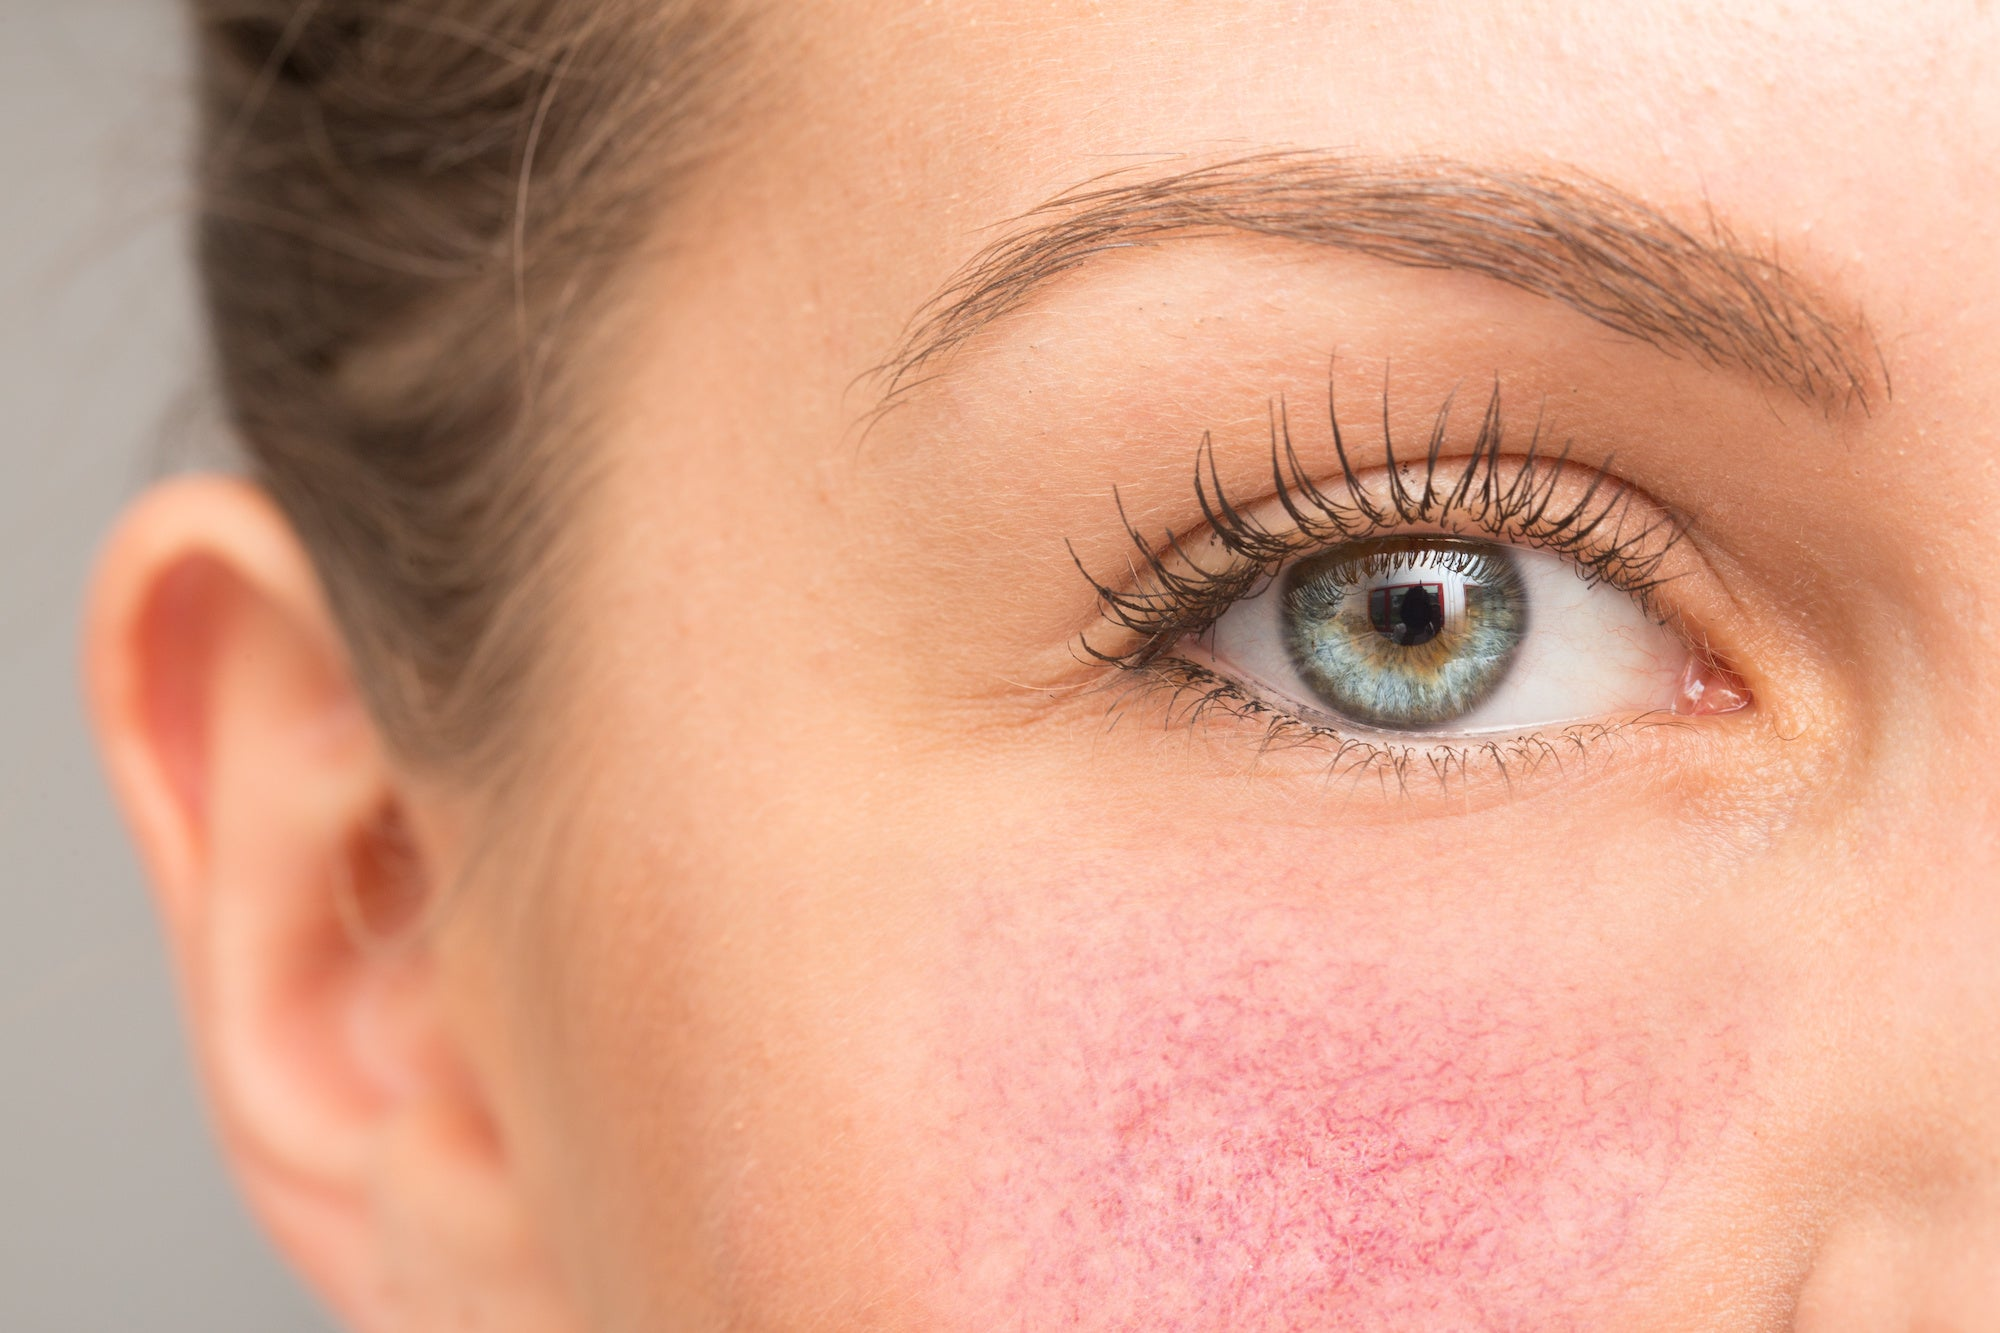 Rosacea: Symptoms, Causes, and Treatment